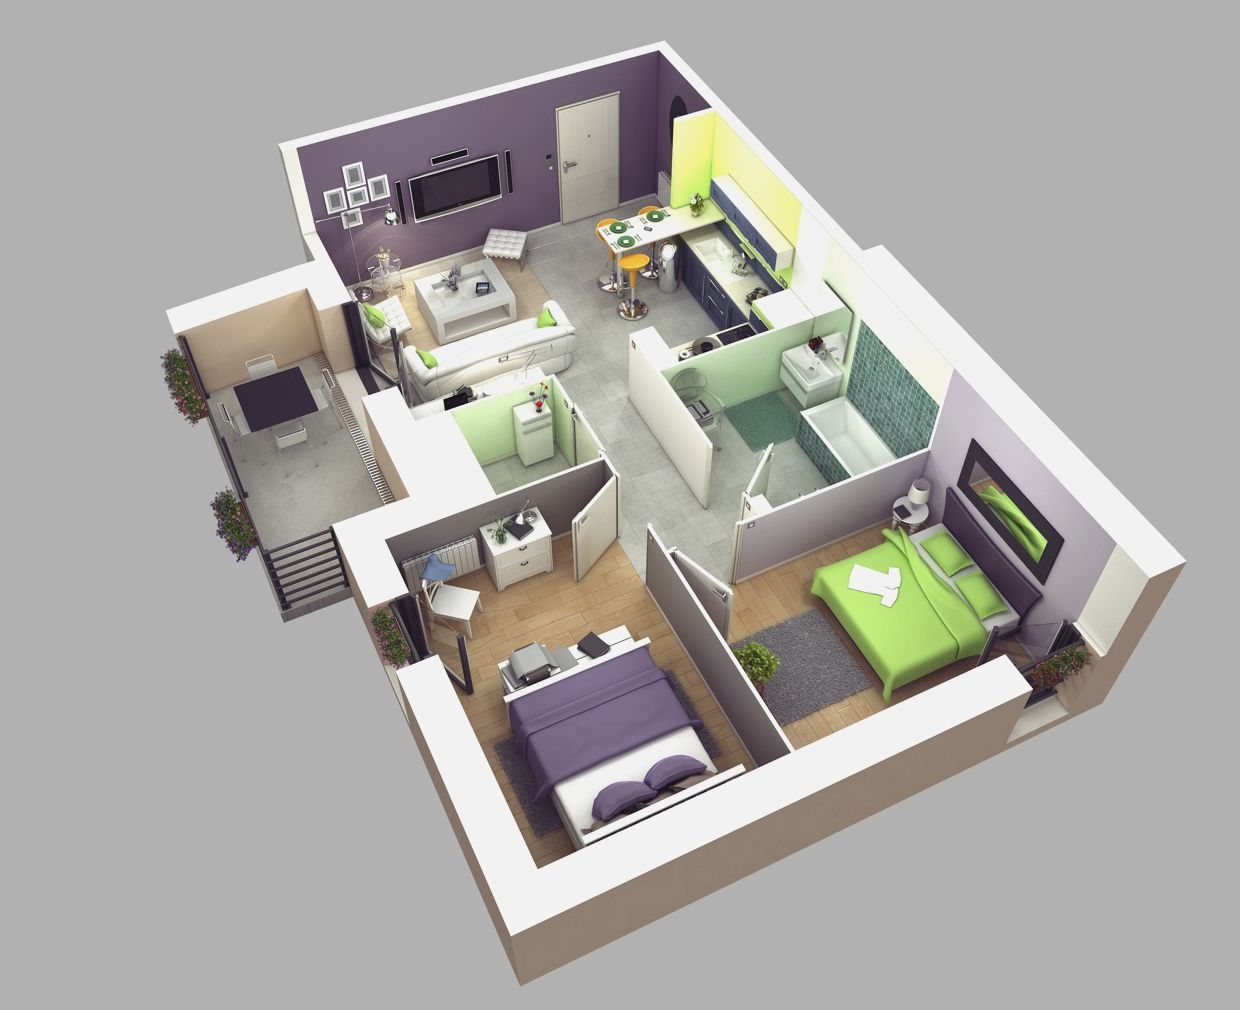 1 bedroom house plans 3d just the two of us apartment for Small house plan design 3d